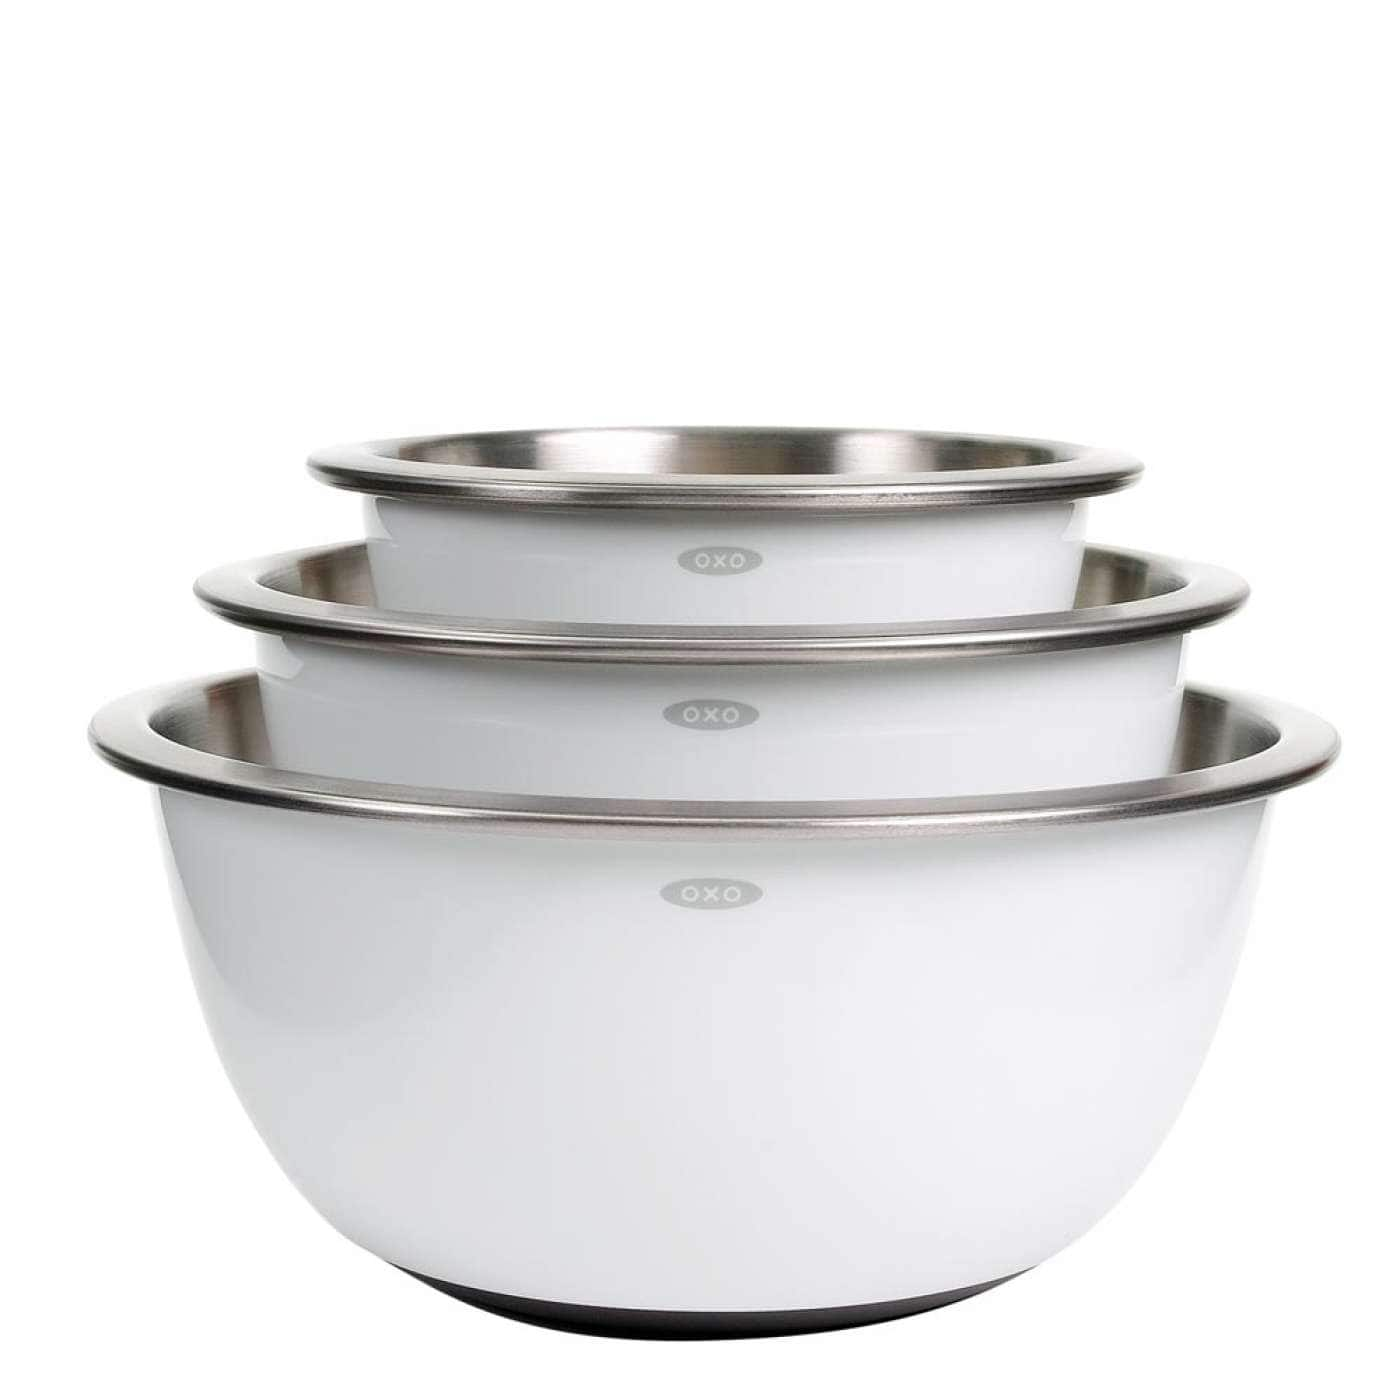 Kohl's cardholders : 1 x OXO Good Grips 3-pc. Stainless Steel Mixing Bowl Set for $36.74 or 2 x OXO® Good Grips® 3-pc. Mixing Bowl Set for $36.63 plus free shipping